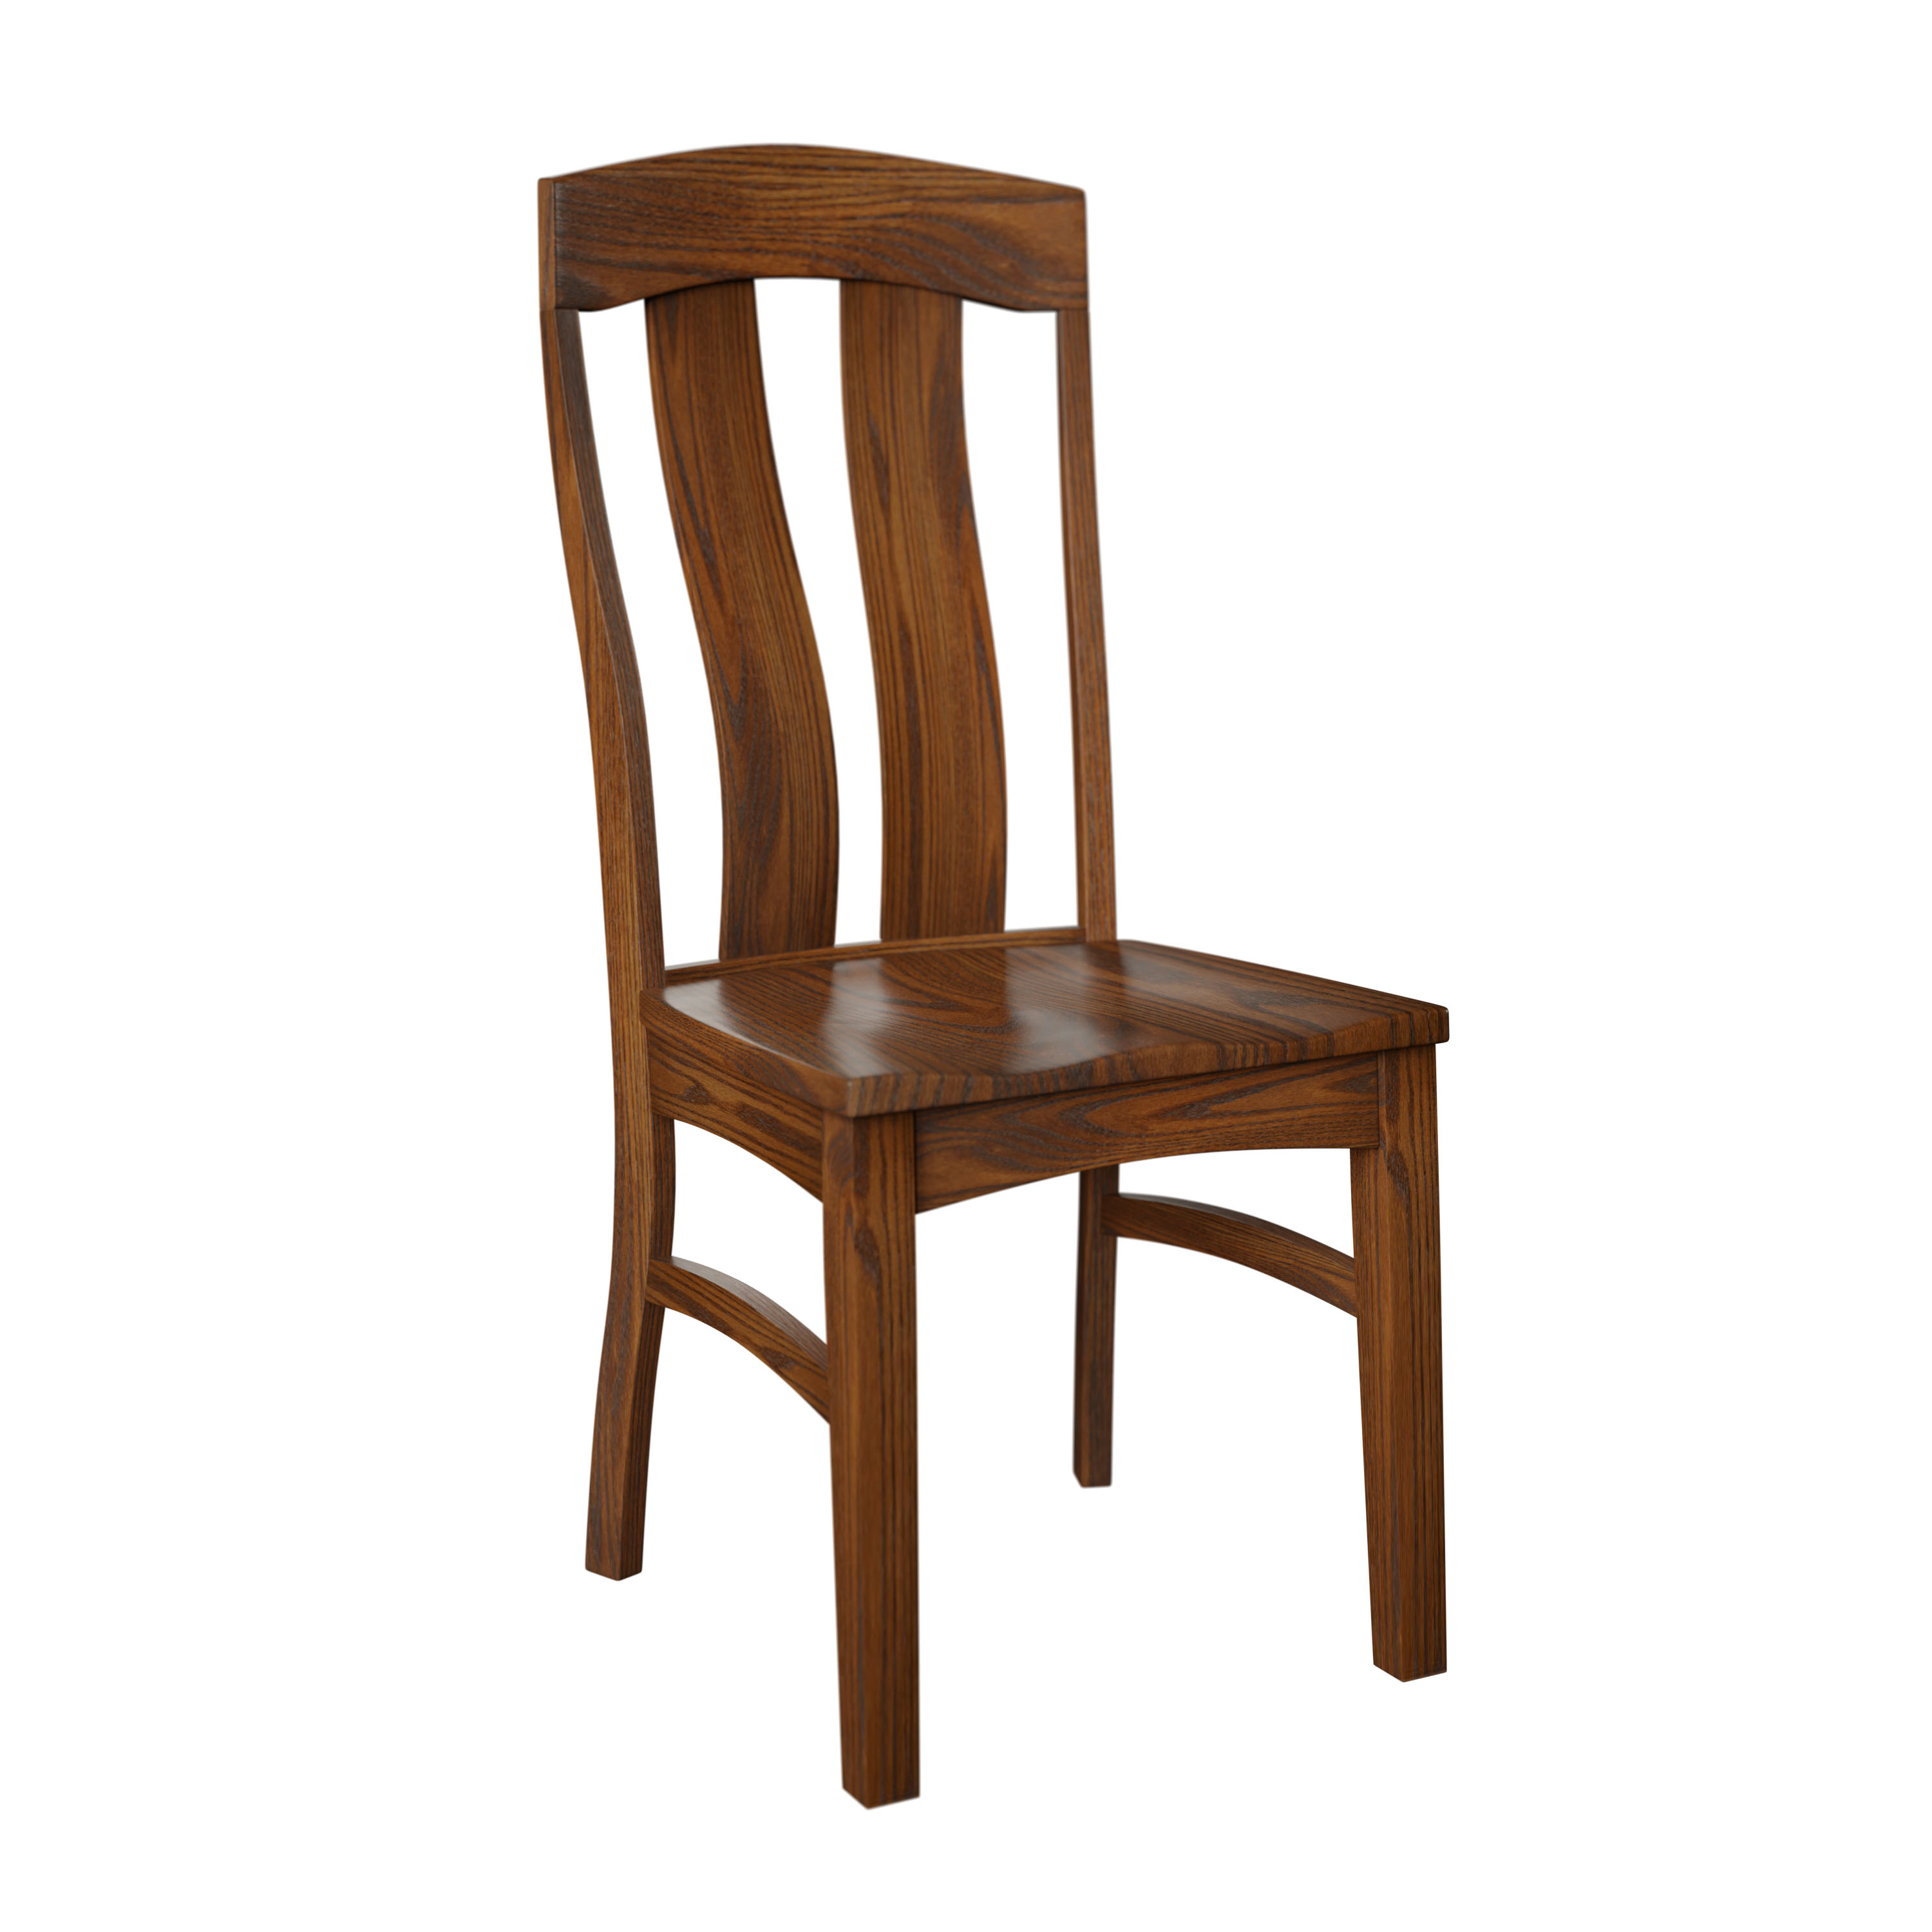 Wadena Dining Chair - Product Alternate Image